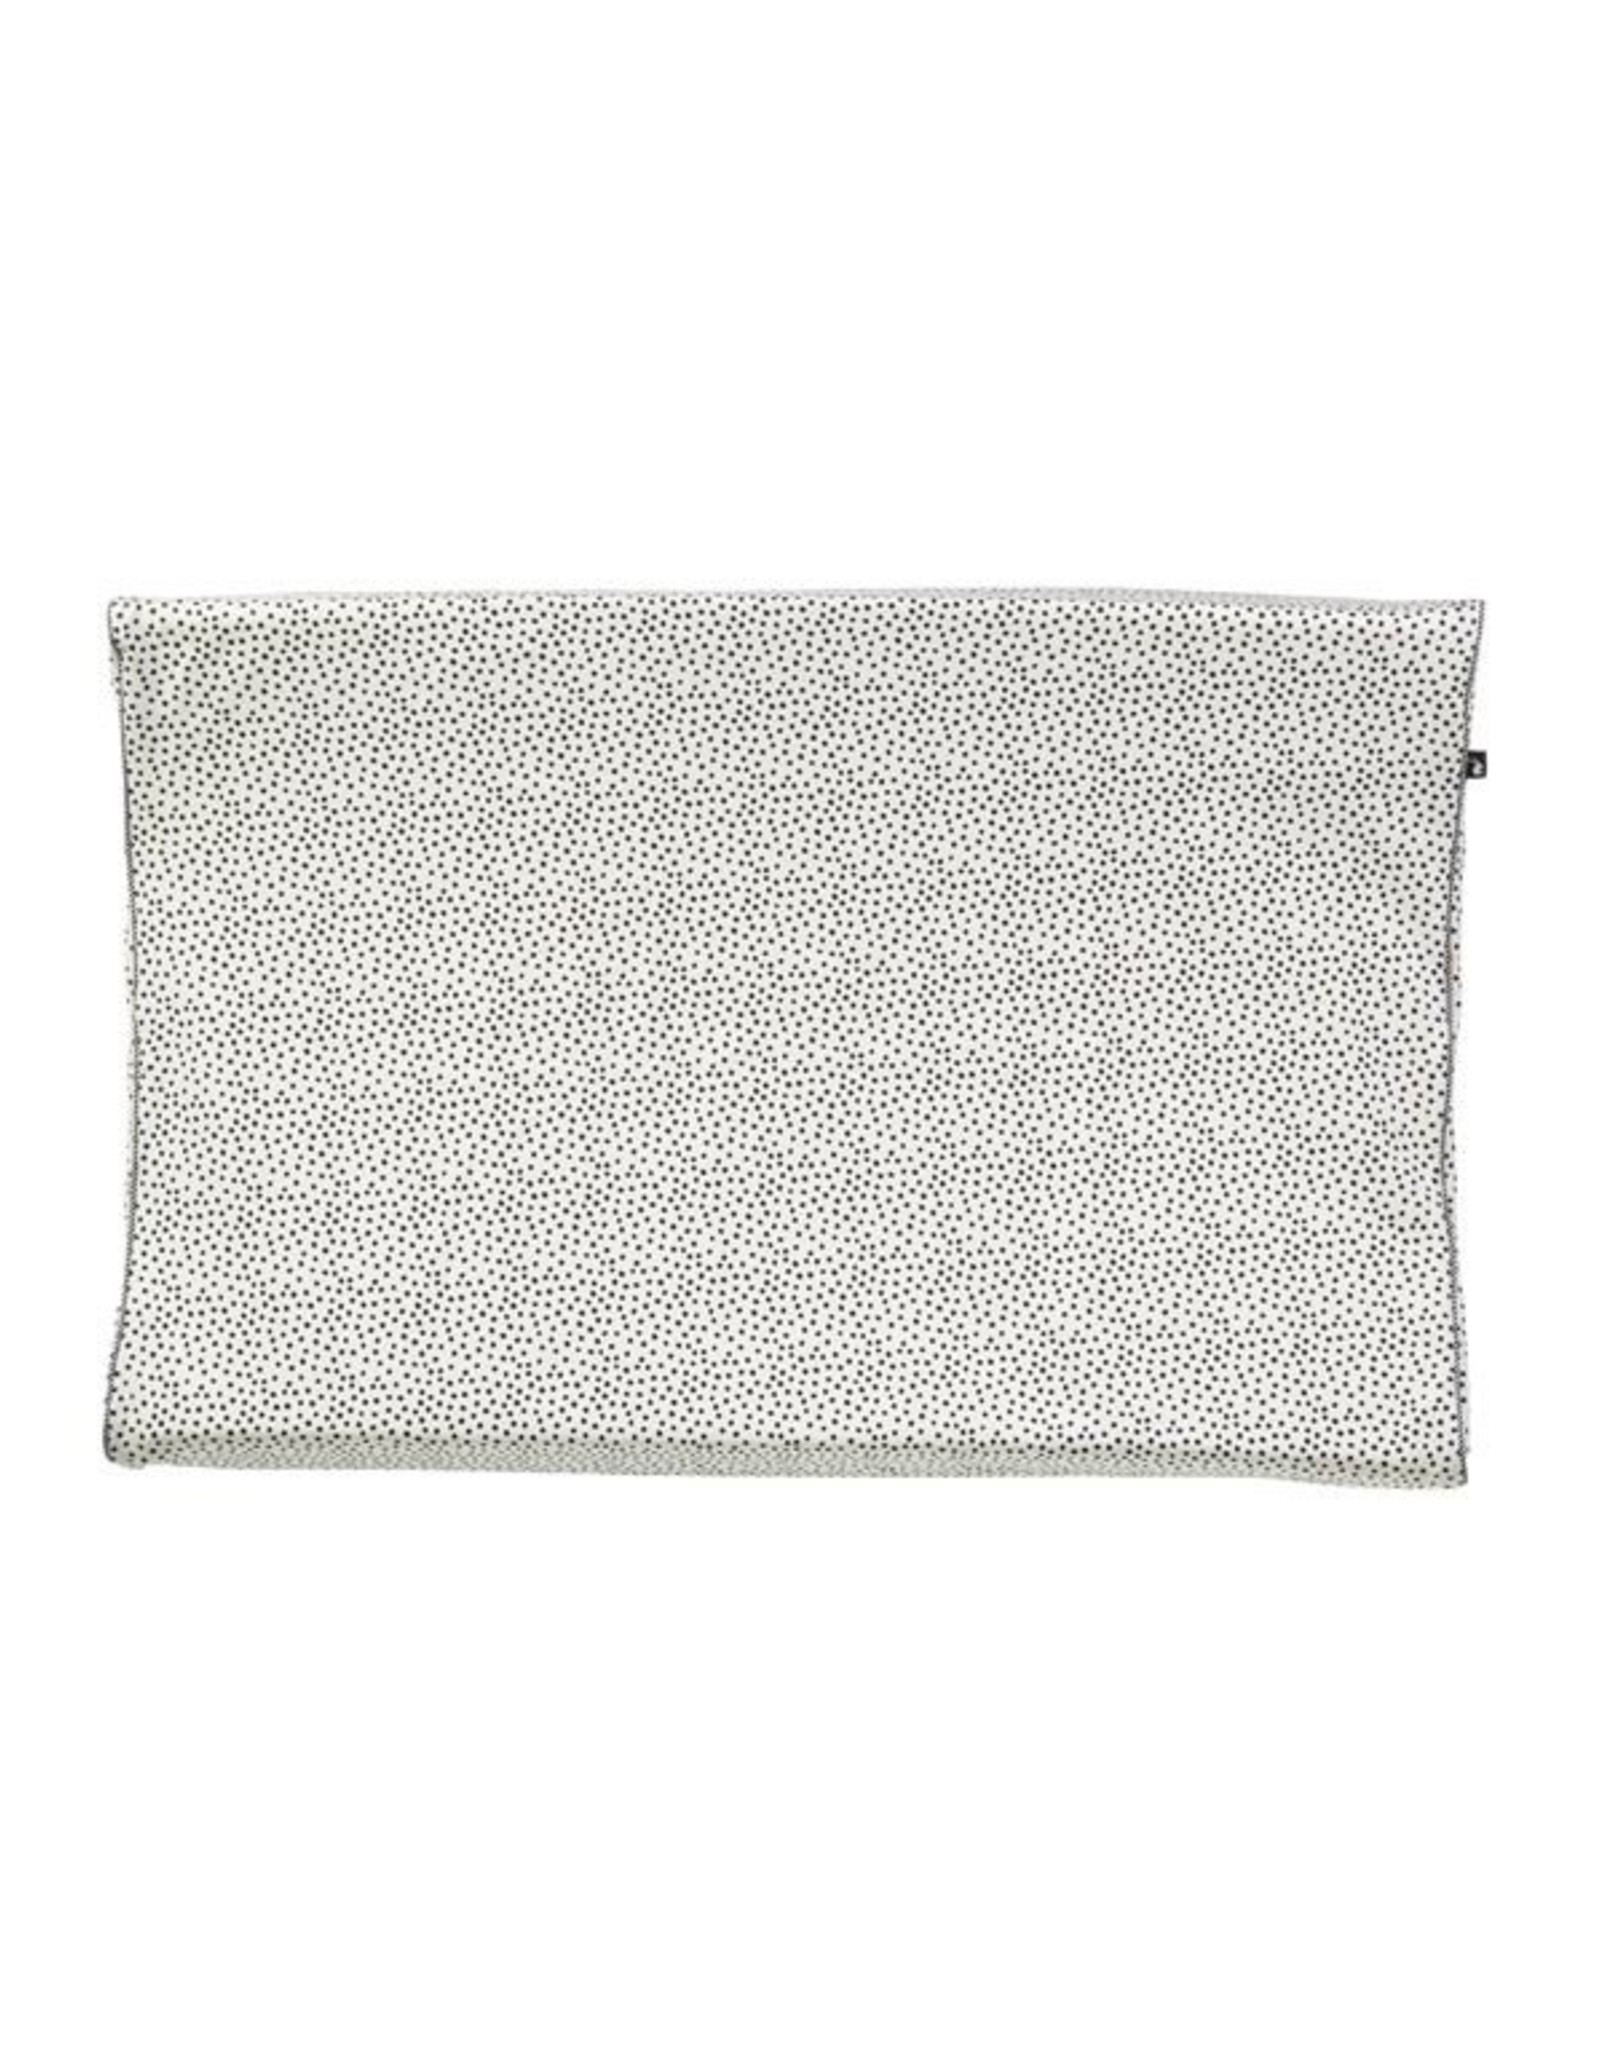 MIES&CO Mies&co - Changing mat cover - Cozy Dots - Offwhite